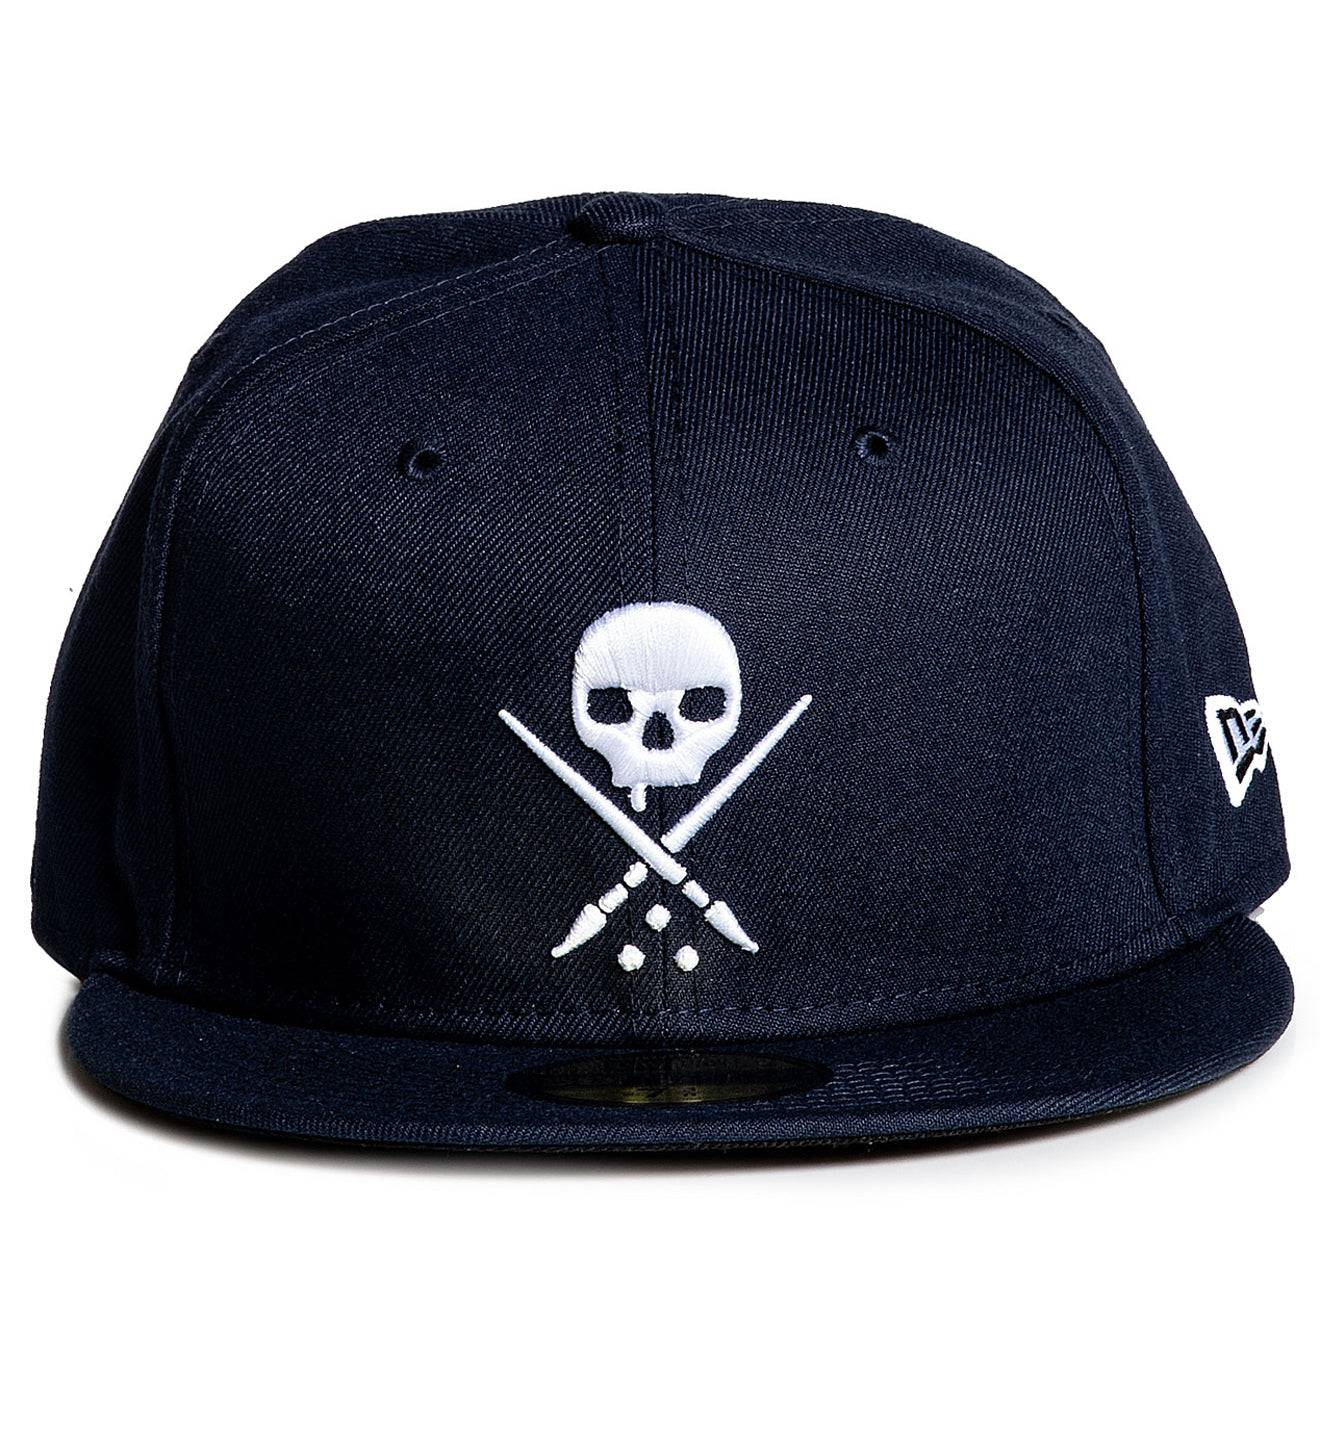 Mens Fitted Badge Navy, NAVY / 73/8